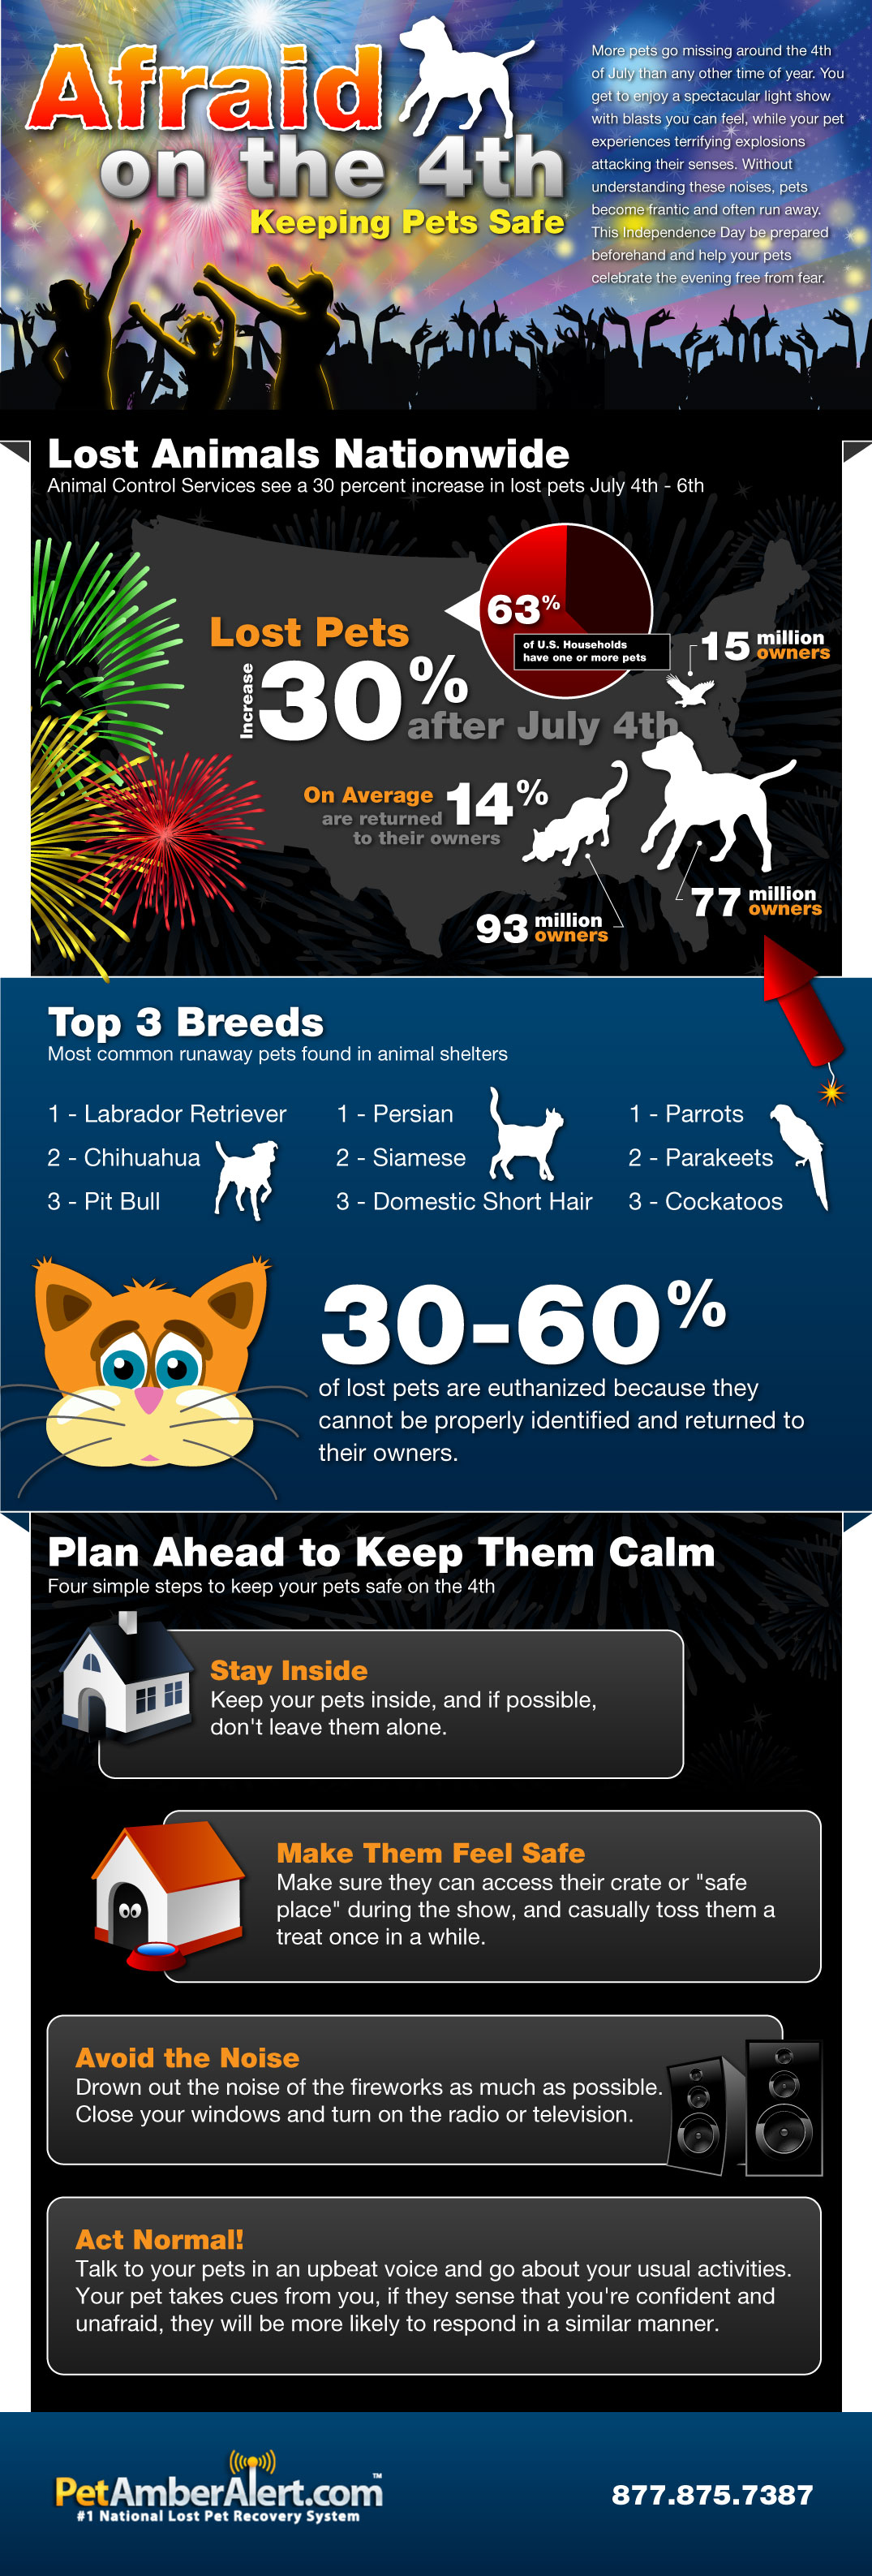 Keeping your pets save on the 4th of July with fireworks.